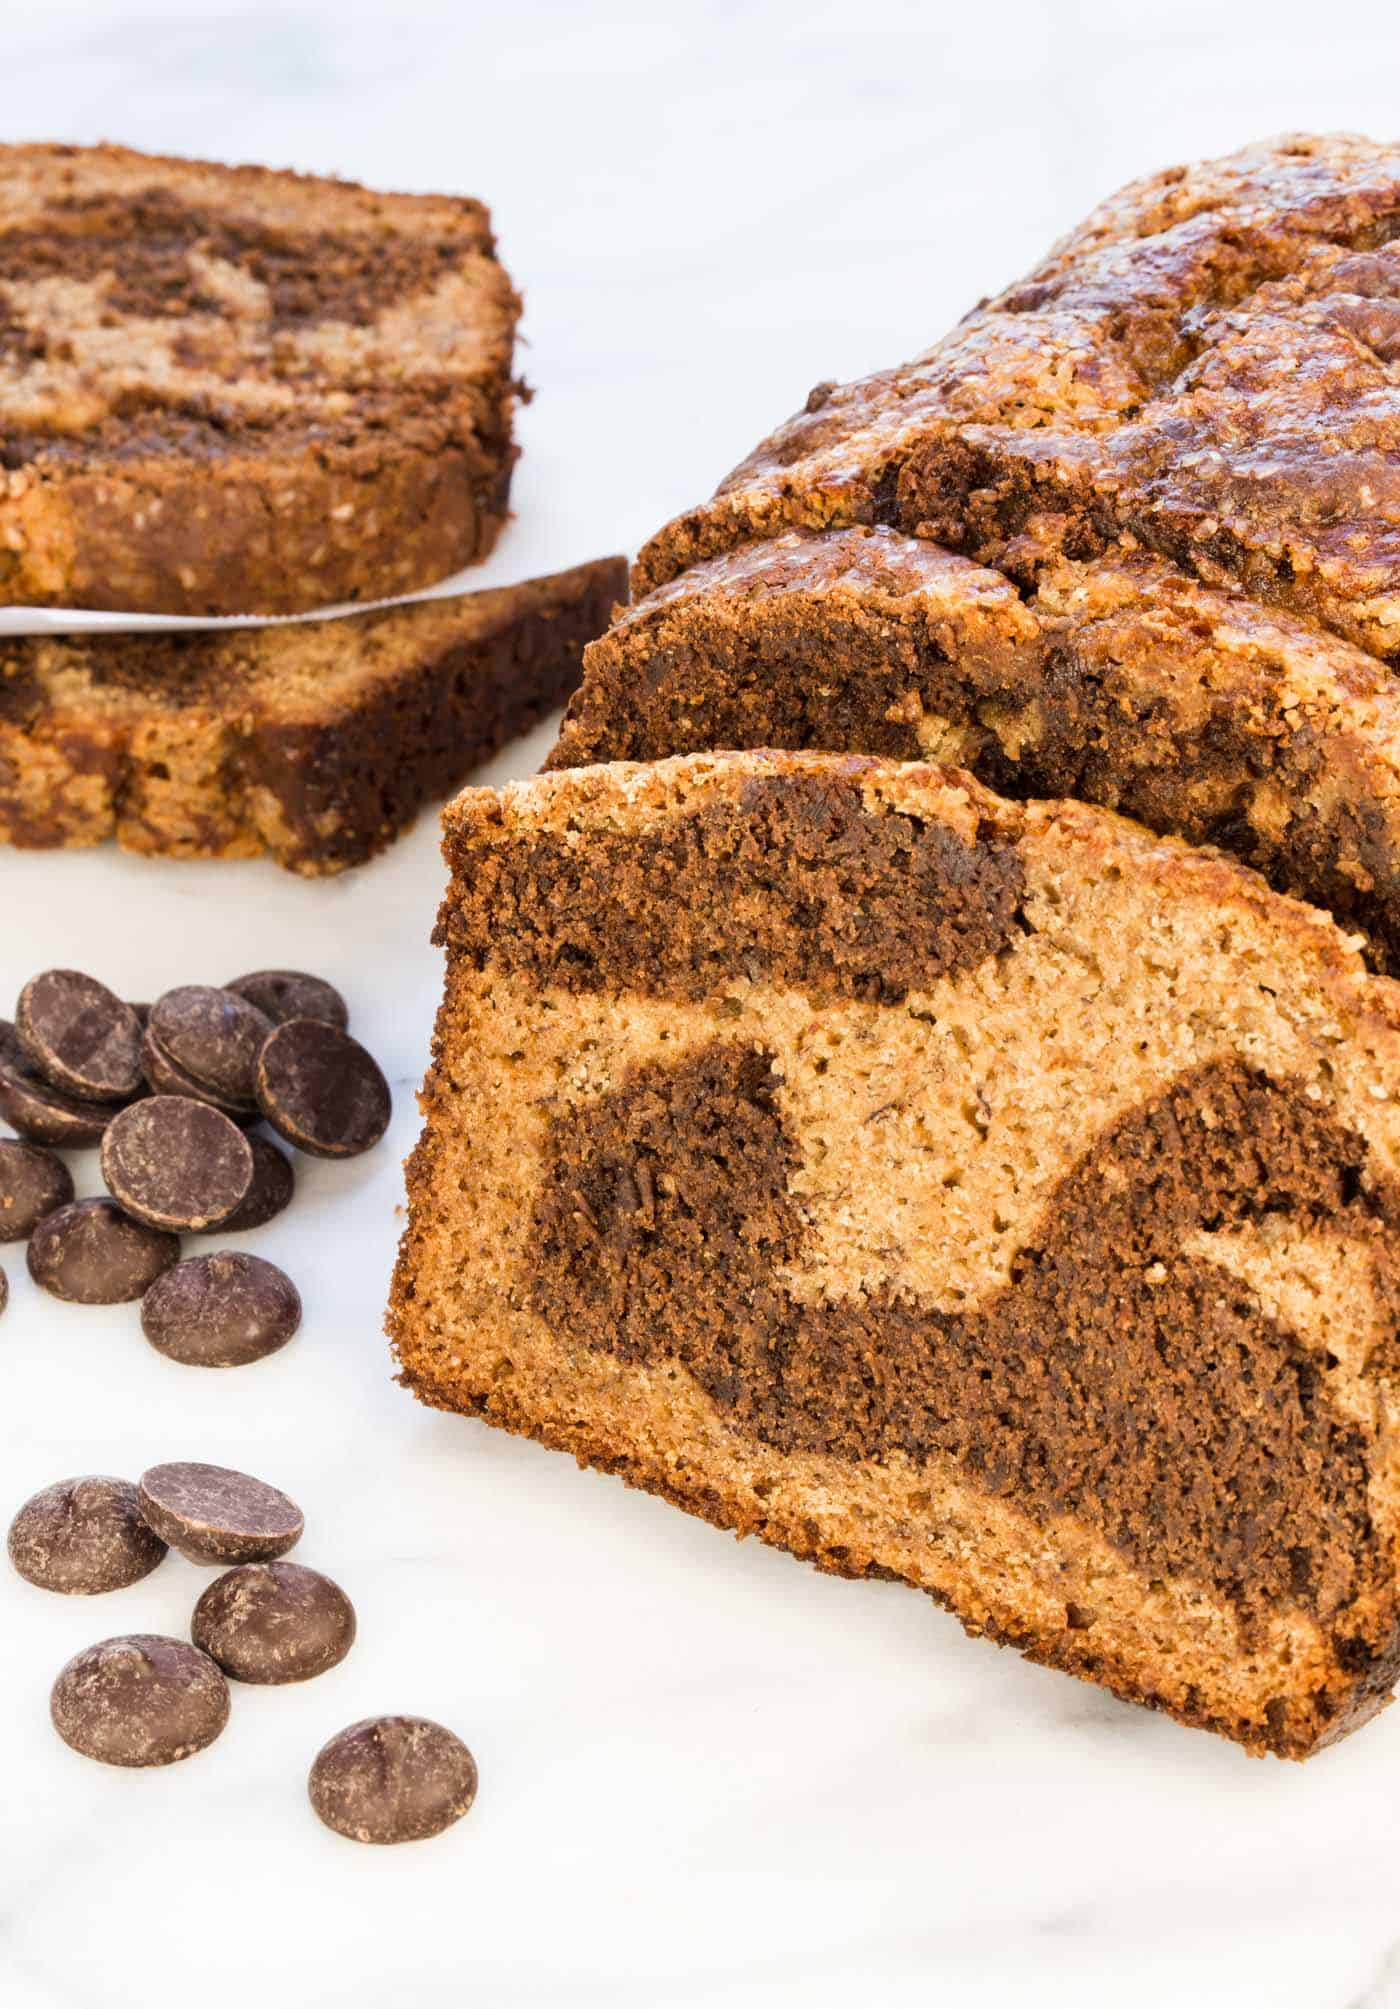 Add a little sweetness to your morning routine with this easy Chocolate Marbled Banana Bread recipe. Don't forget to freeze an extra loaf for busy mornings!